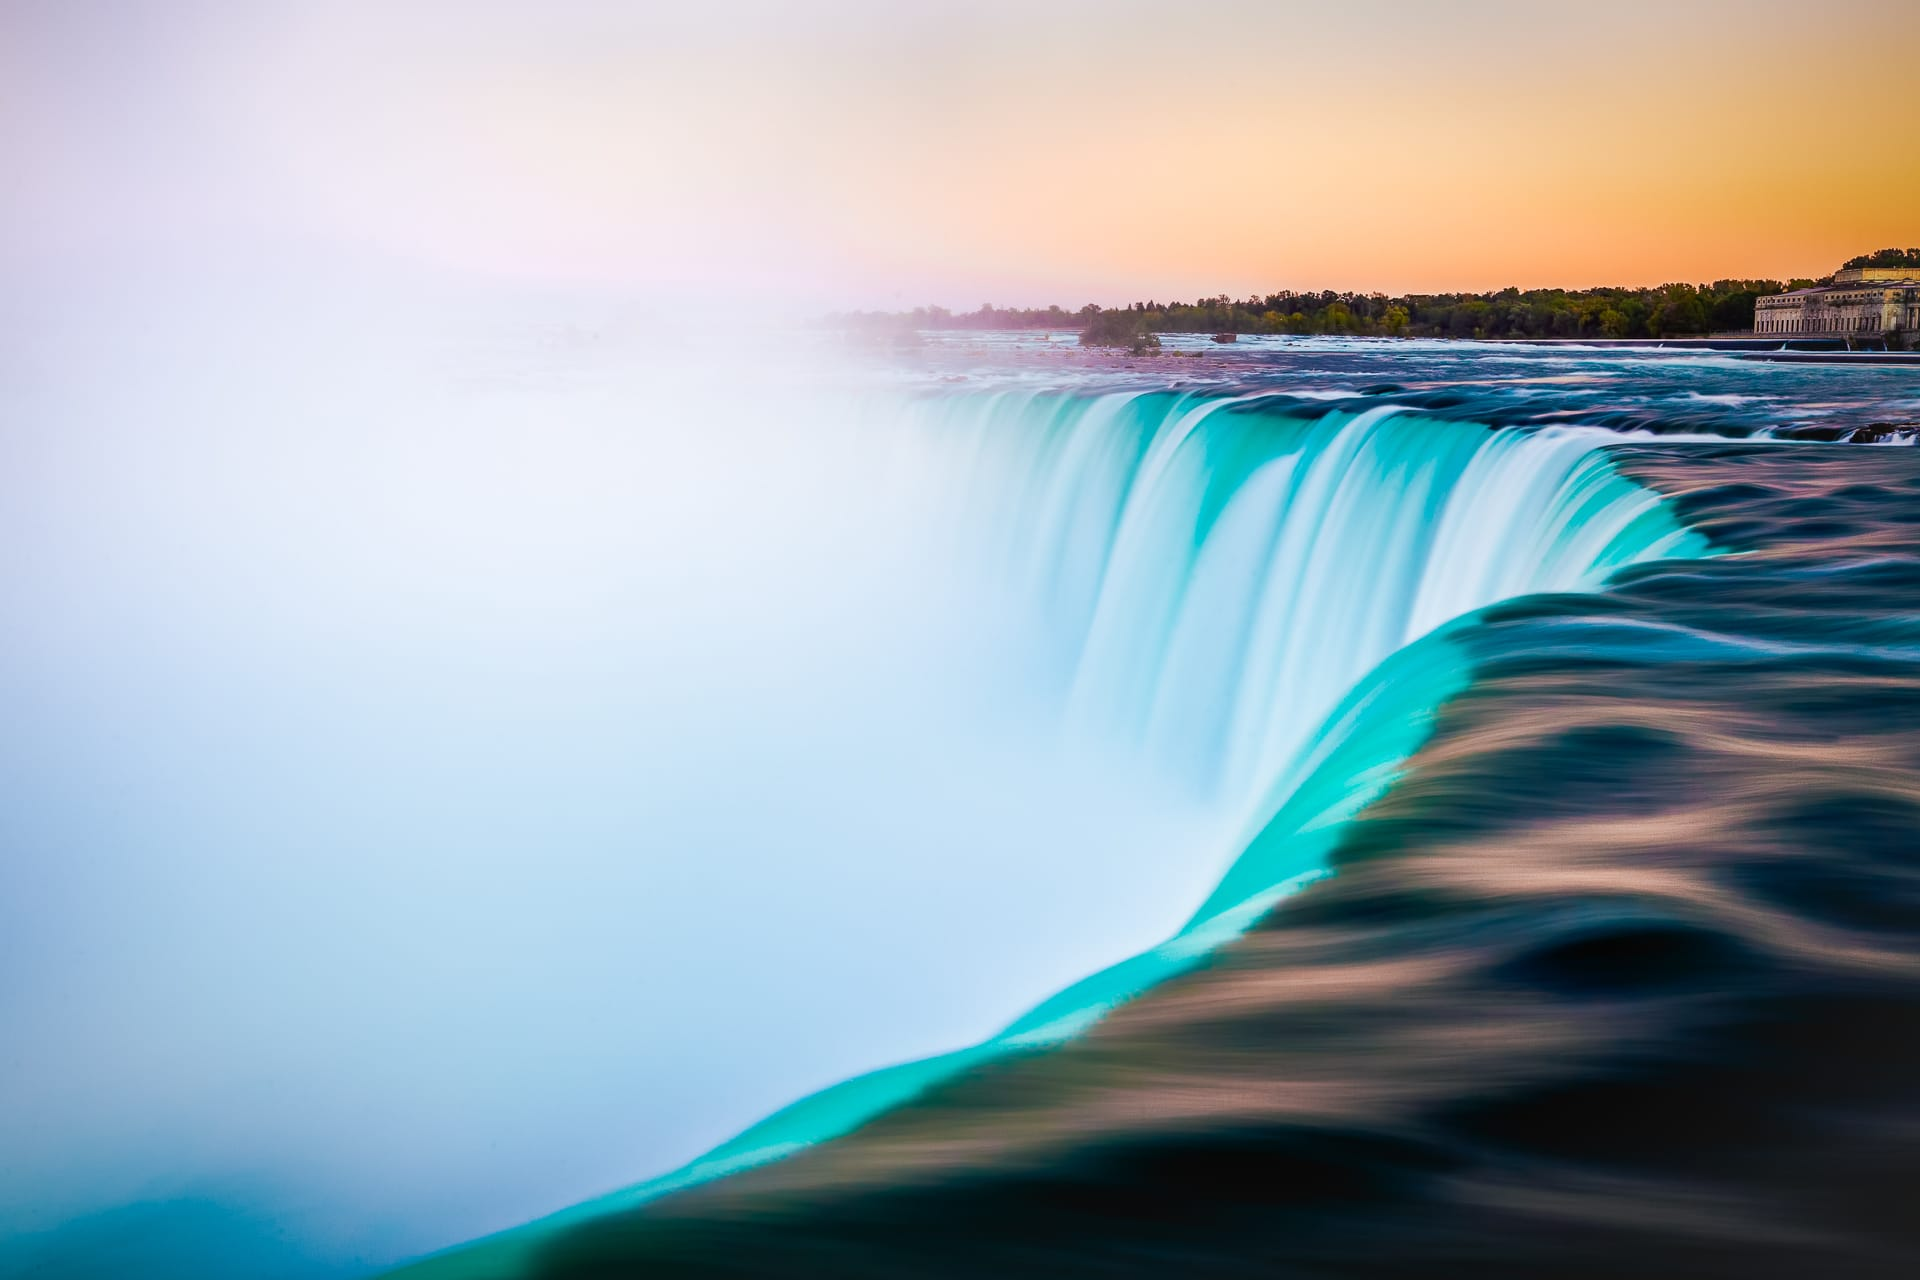 Over The Falls at Niagara Falls